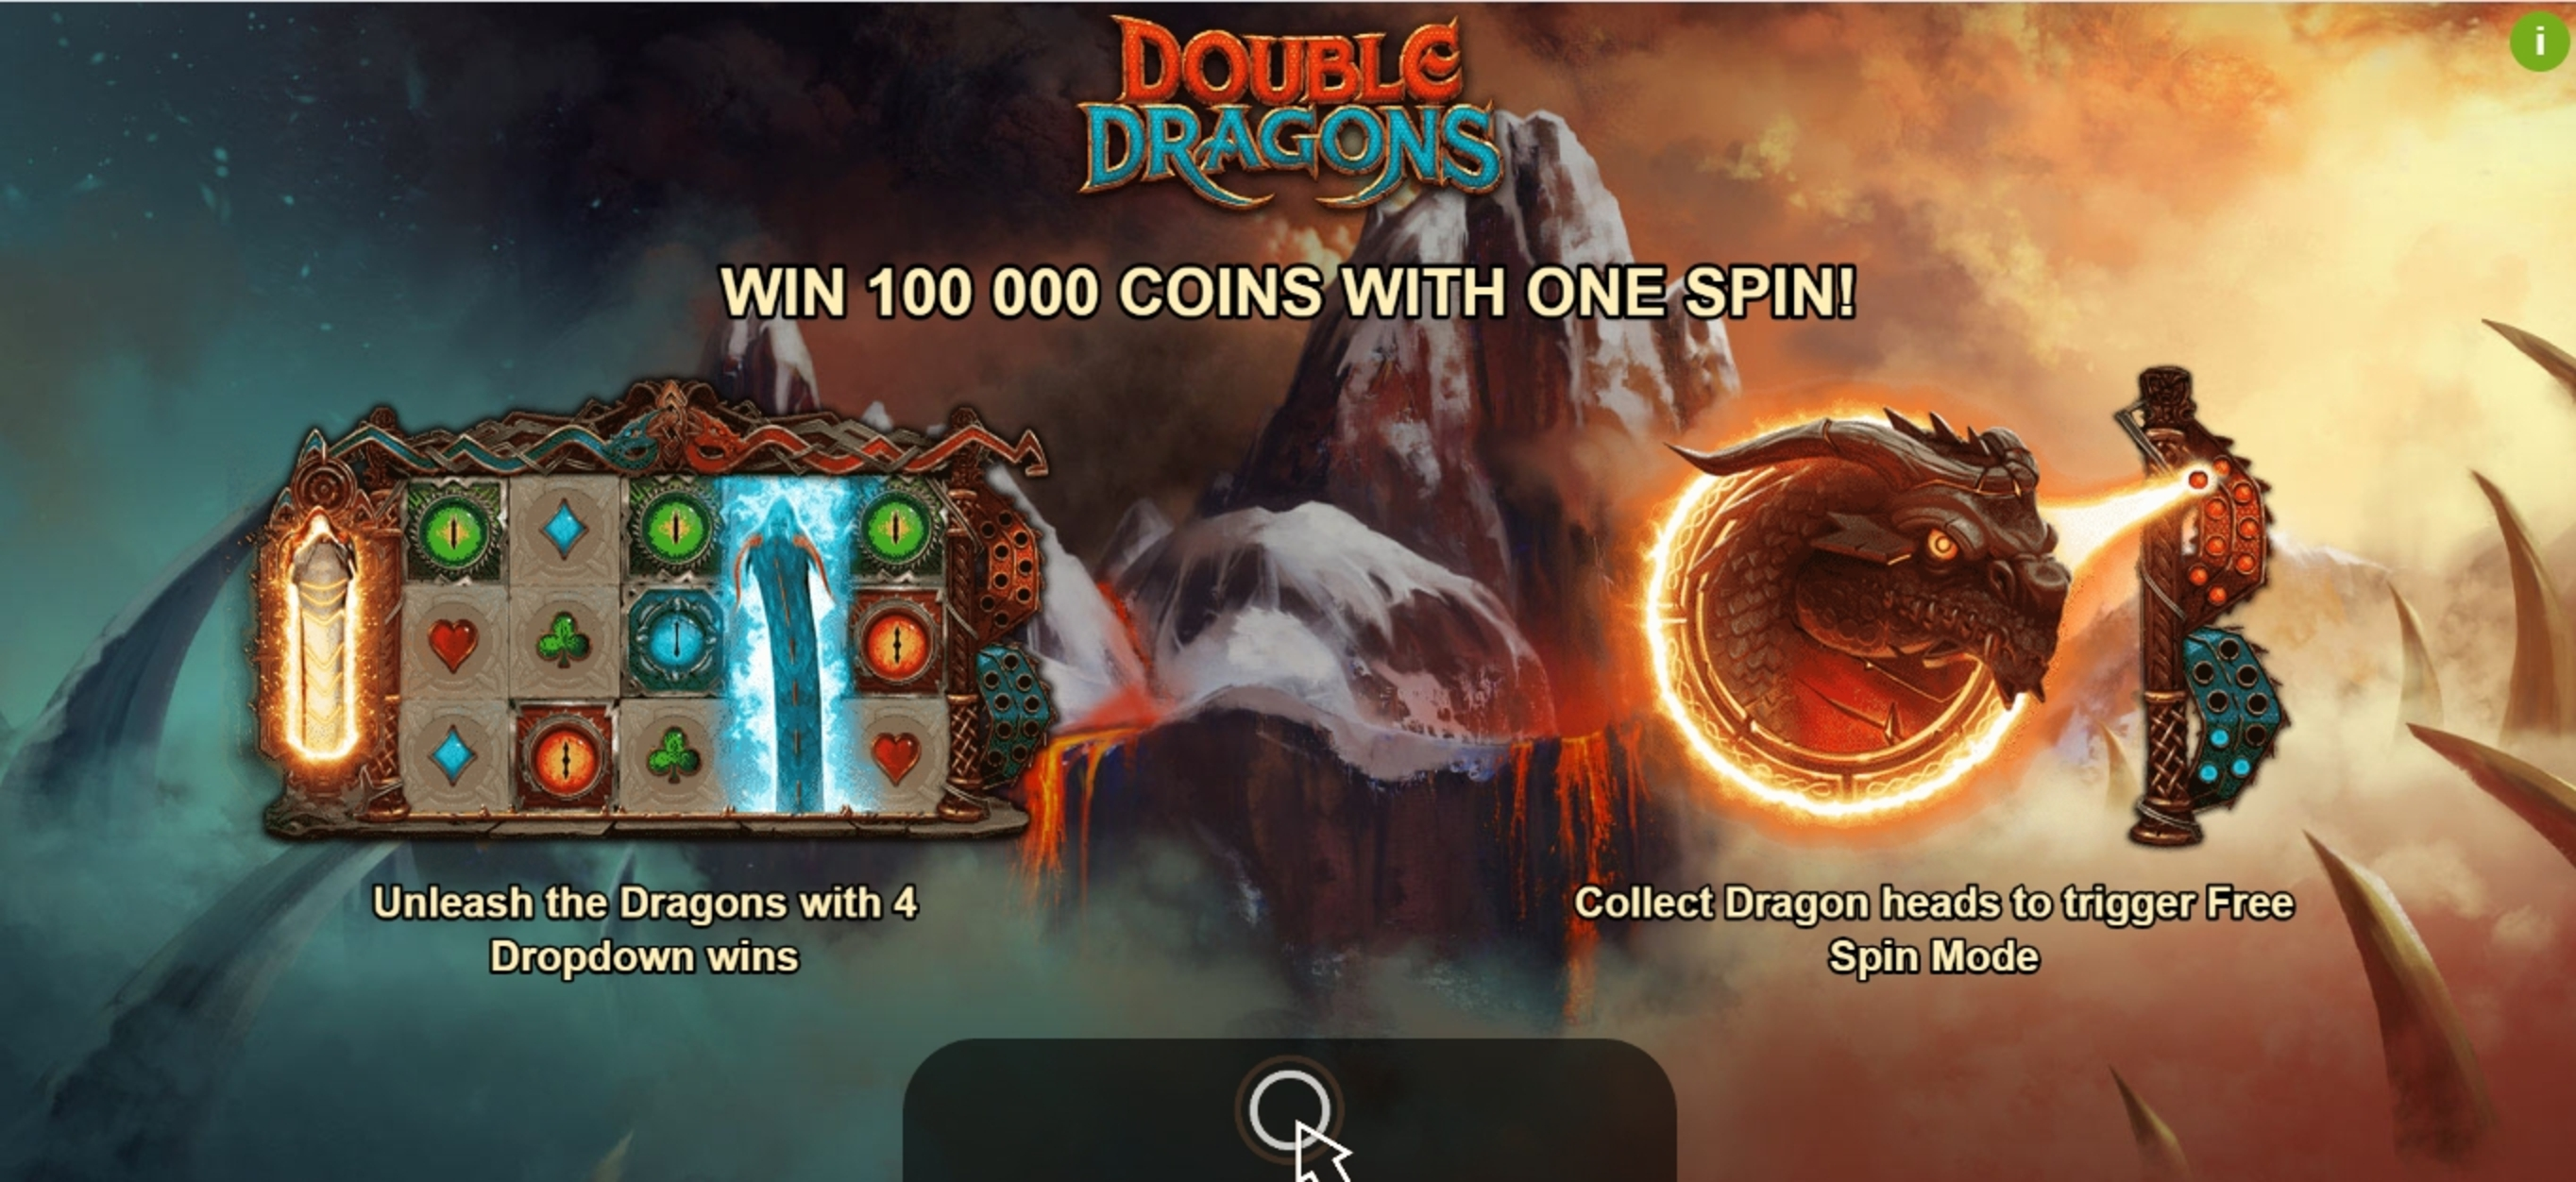 Play Double Dragons Free Casino Slot Game by Yggdrasil